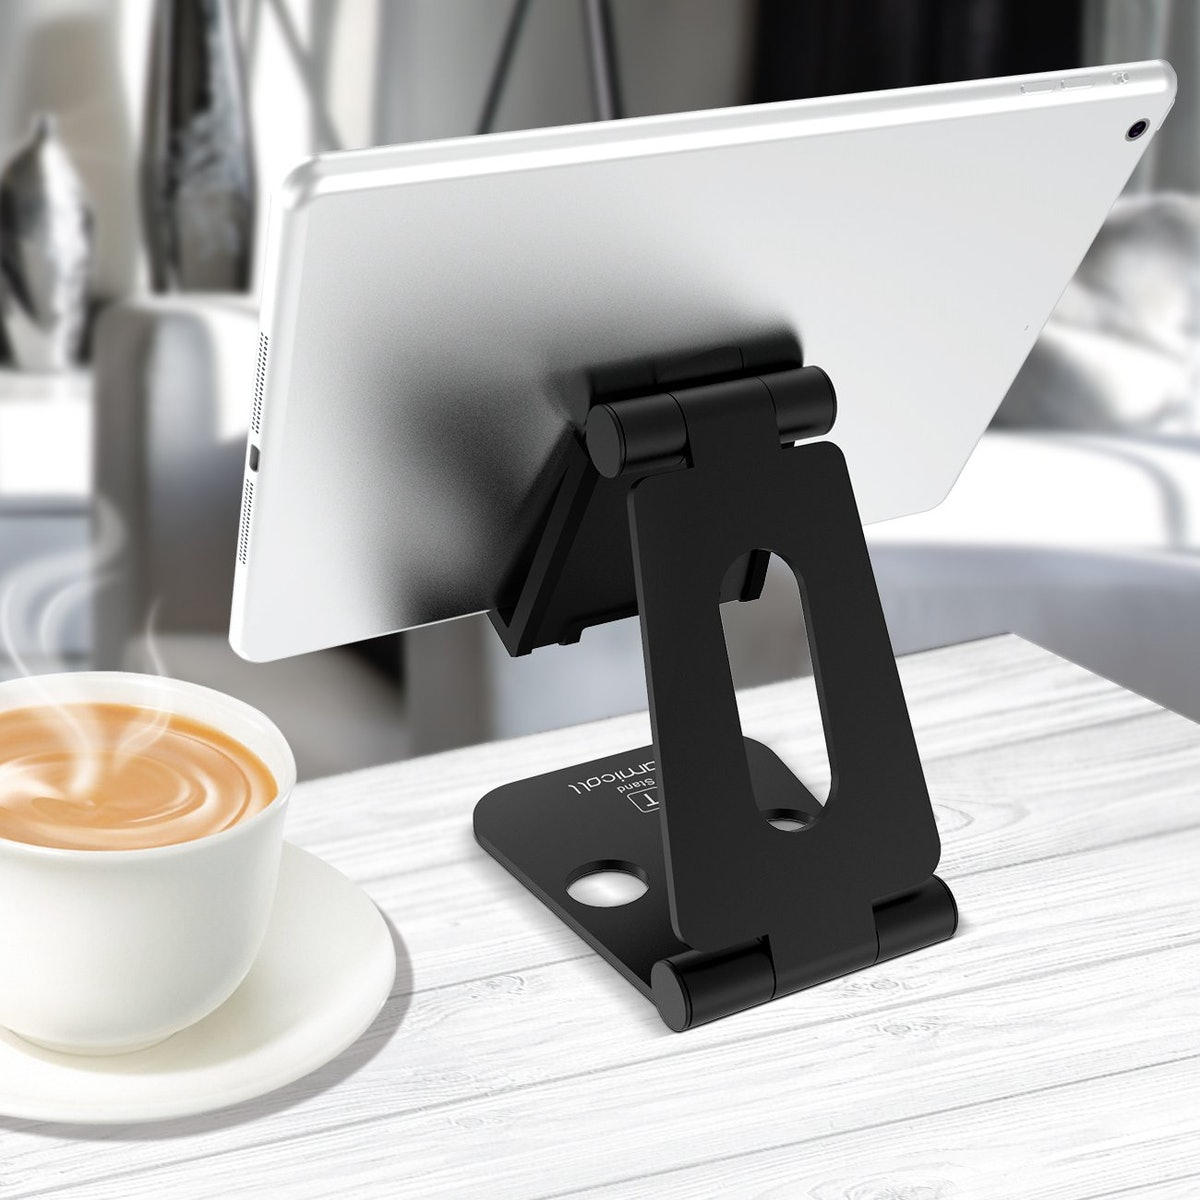 Lamicall Multi-Angle Stand